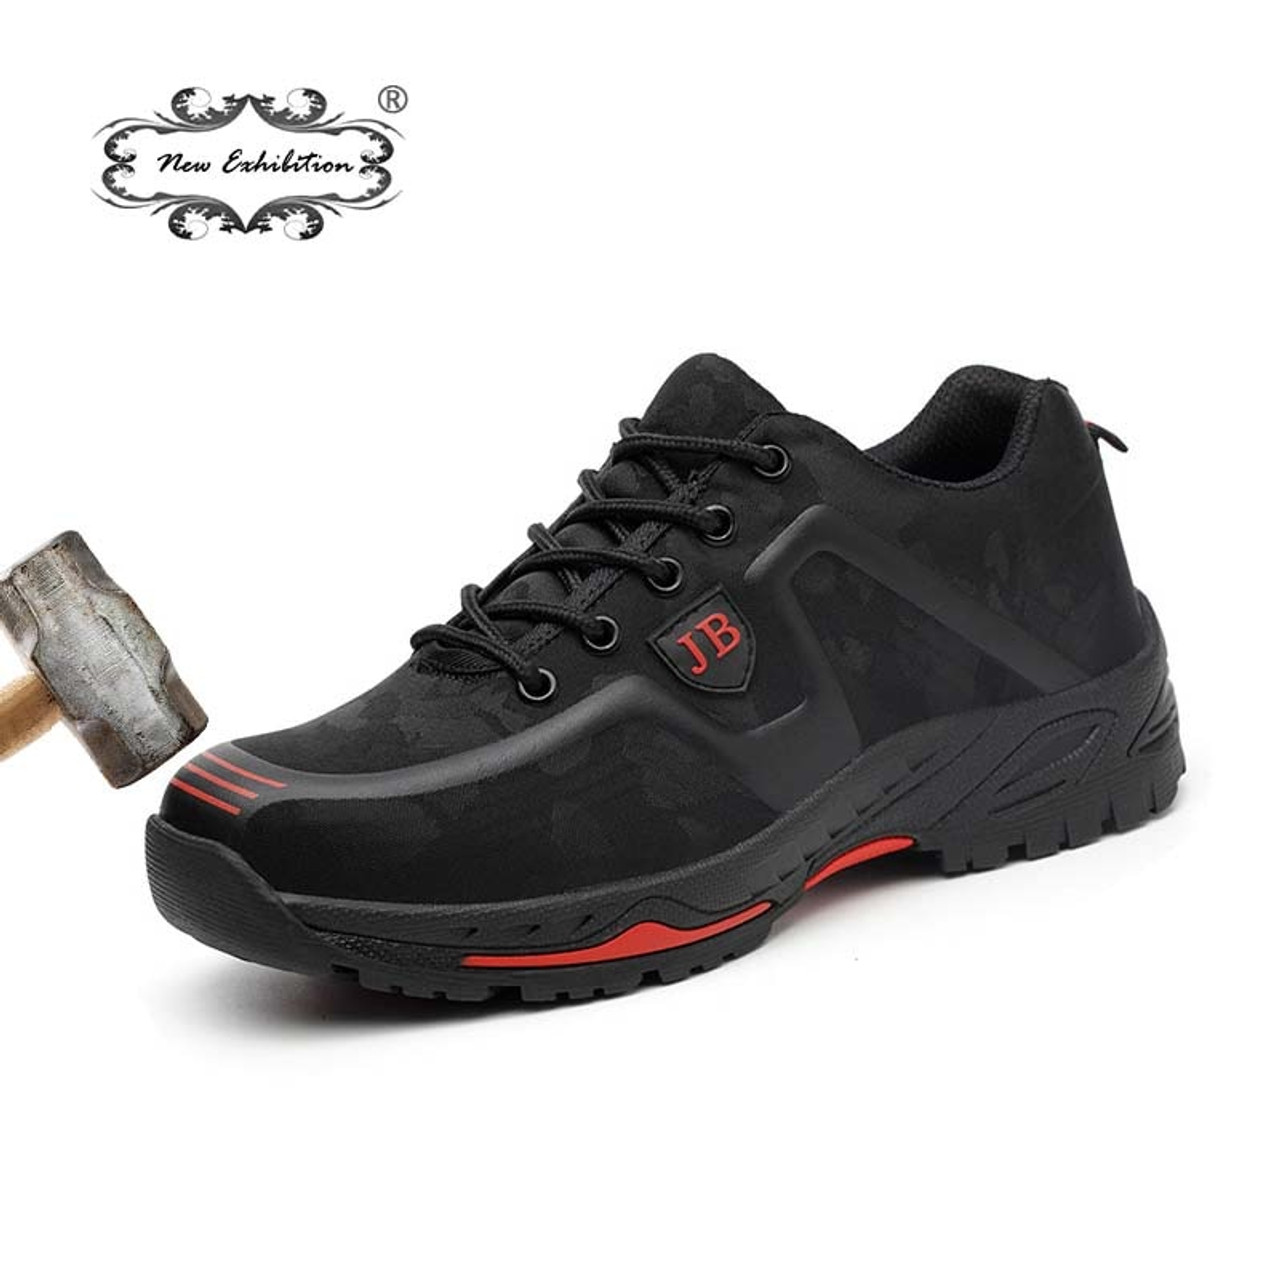 18d0bfaf3bf5 New exhibition fashion safety shoes Men Outdoor Steel Toe Cap anti-puncture  Boots Lightweight and ...